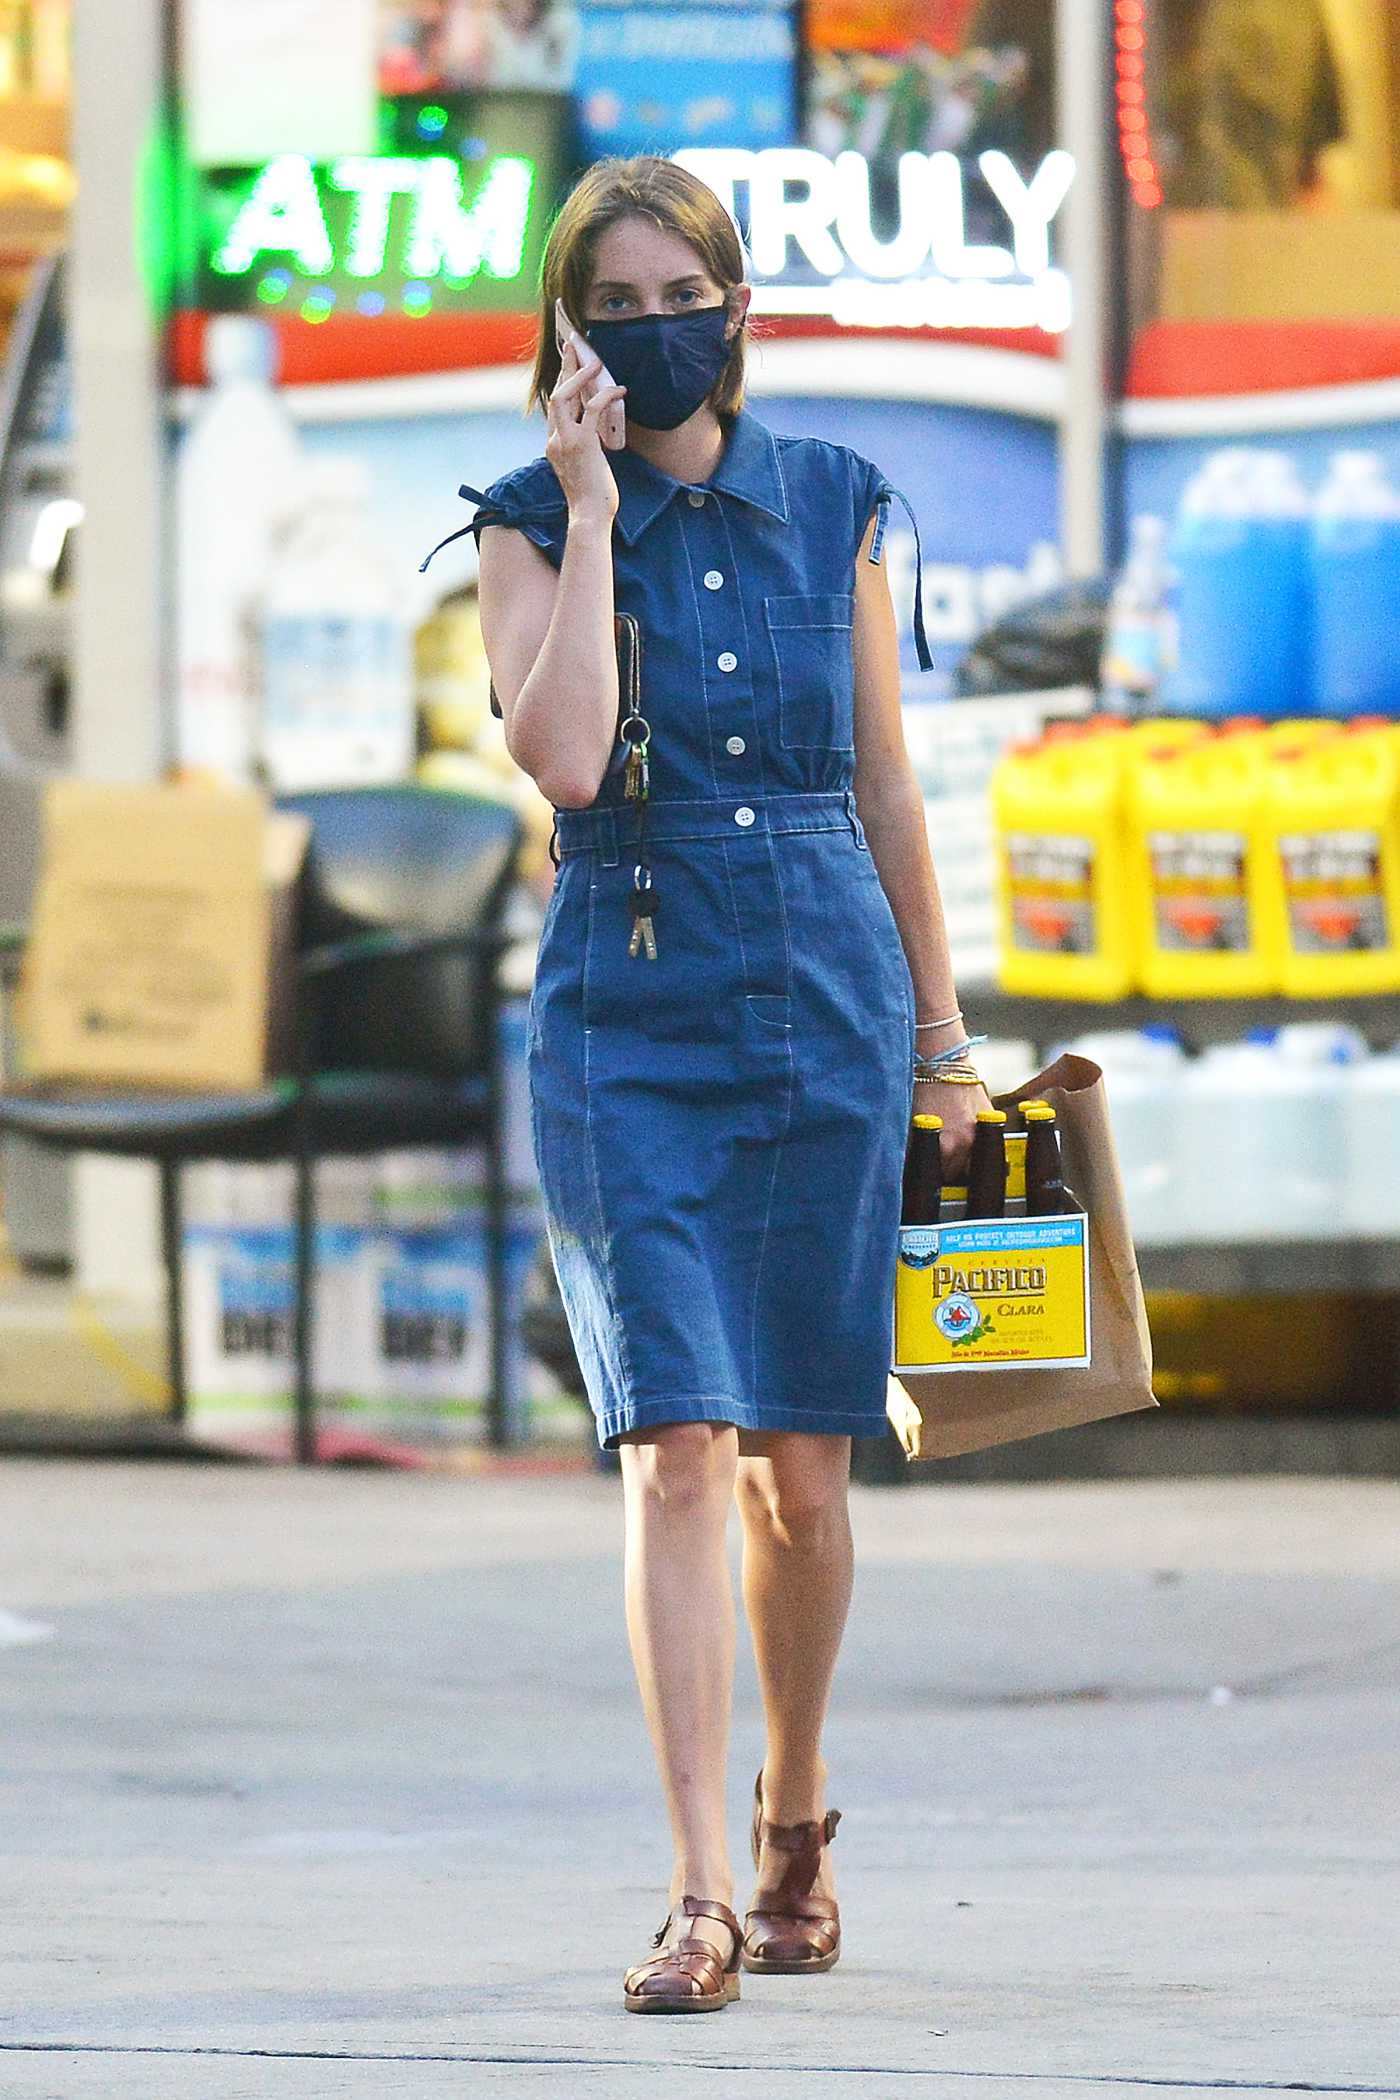 Maya Hawke in a Blue Dress Picks up a Pack of Pacifico Clara Beer in New York 07/29/2020